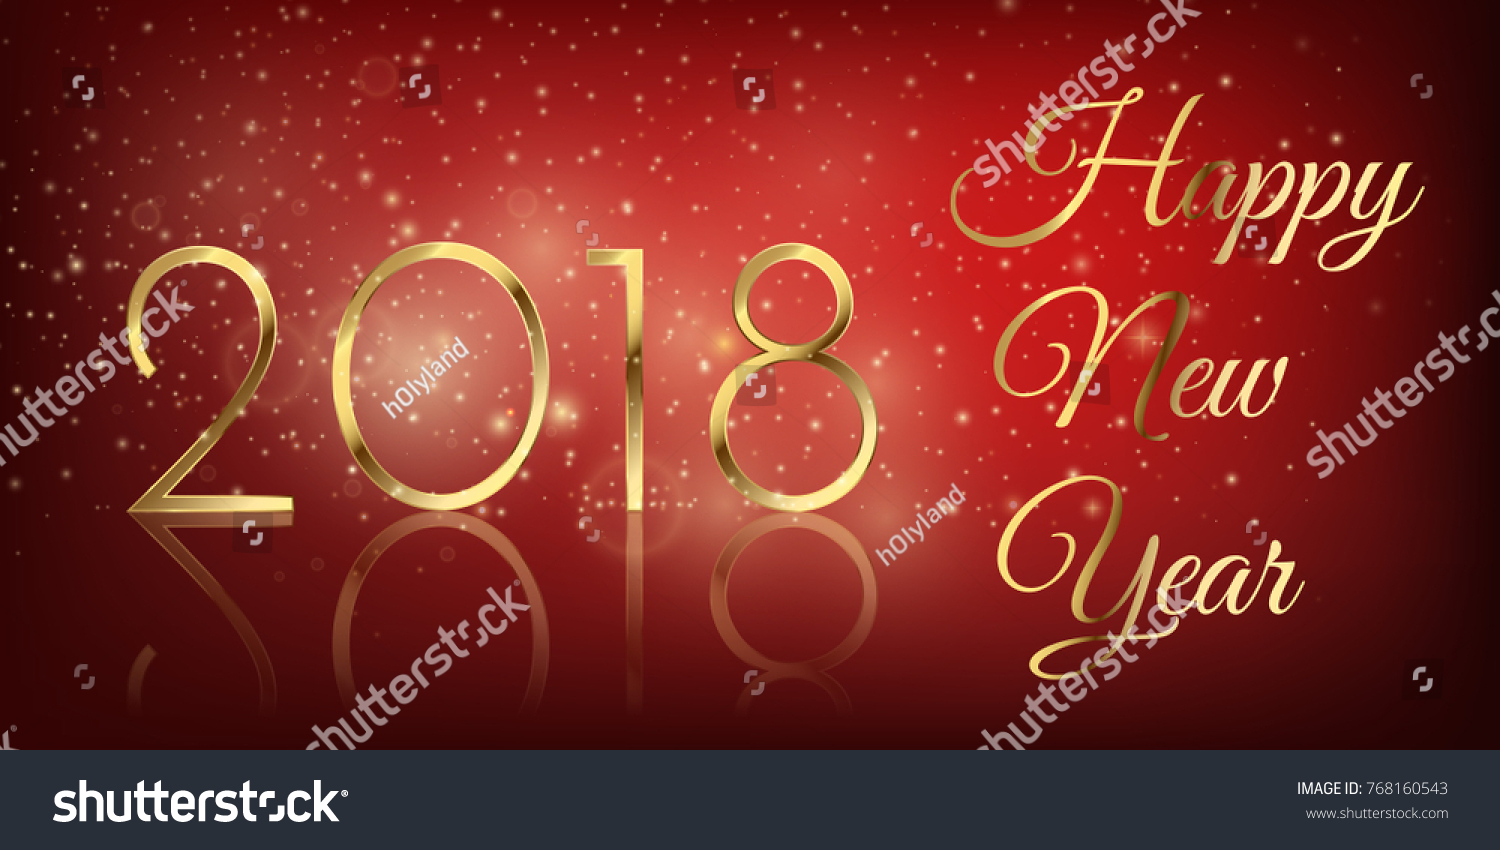 Happy New Year 2018 Beautiful Gold Stock Vector (Royalty Free ...